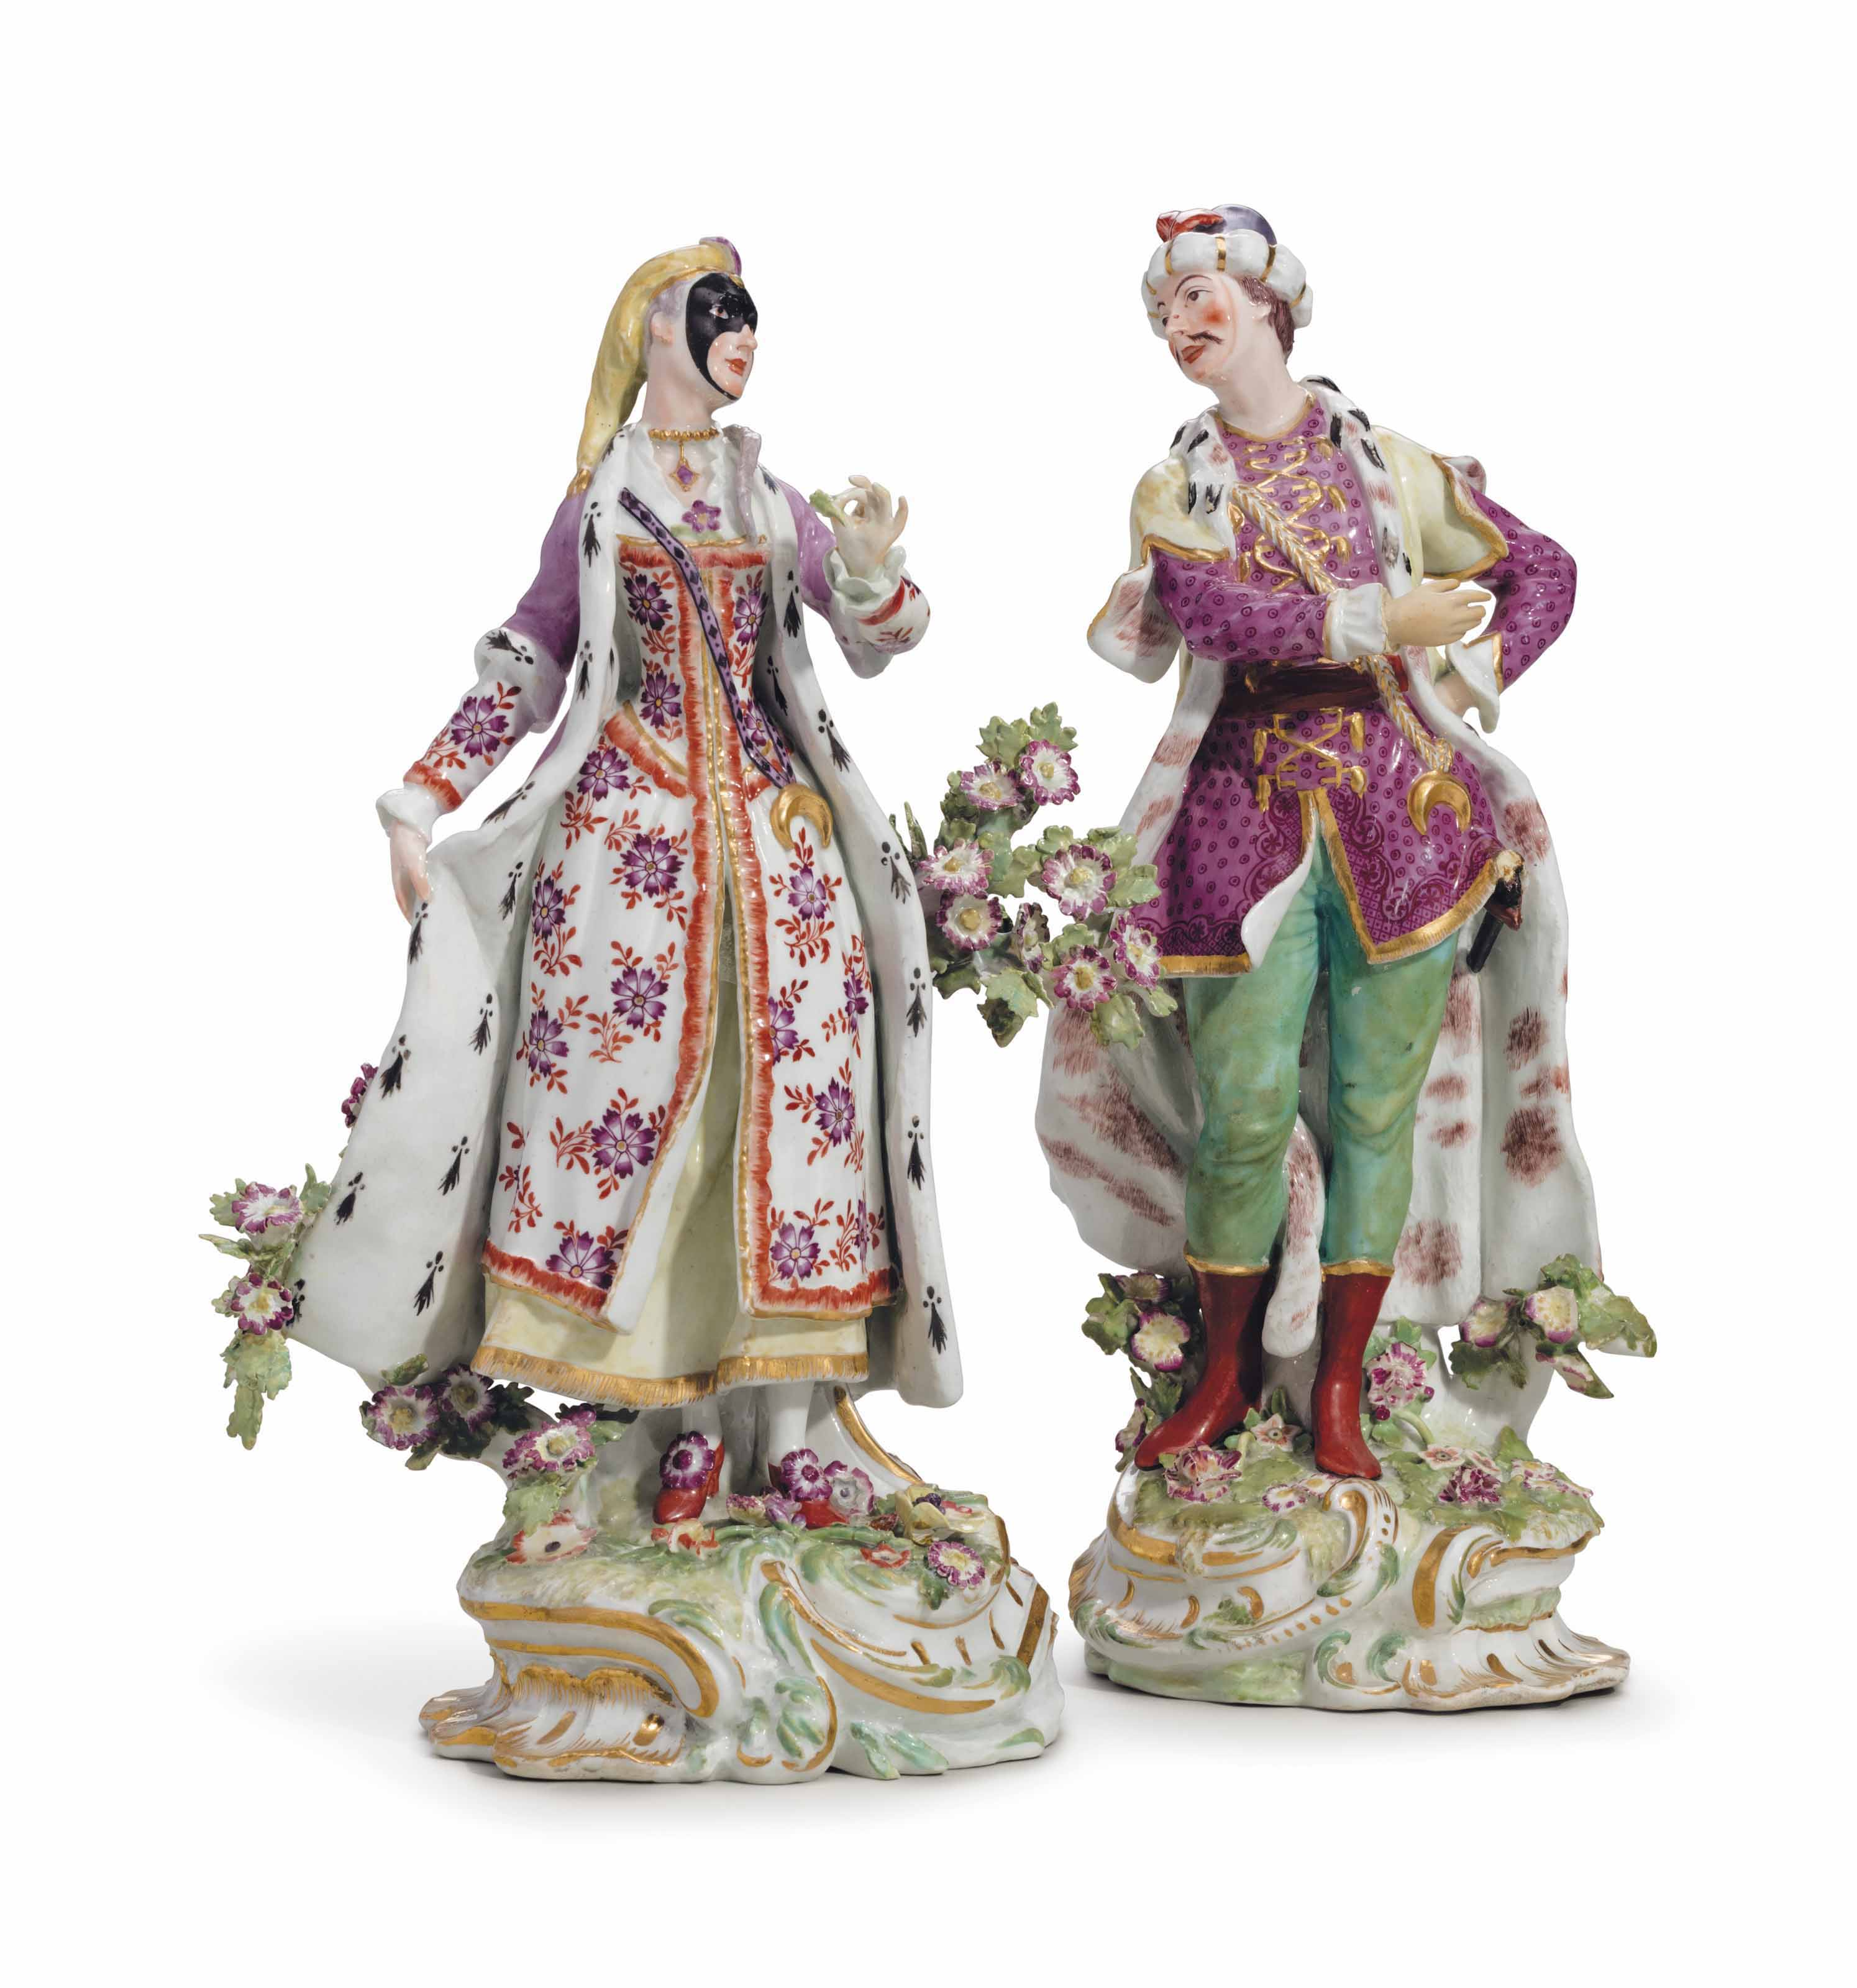 A PAIR OF CHELSEA PORCELAIN FIGURES OF VAUXHALL SINGERS